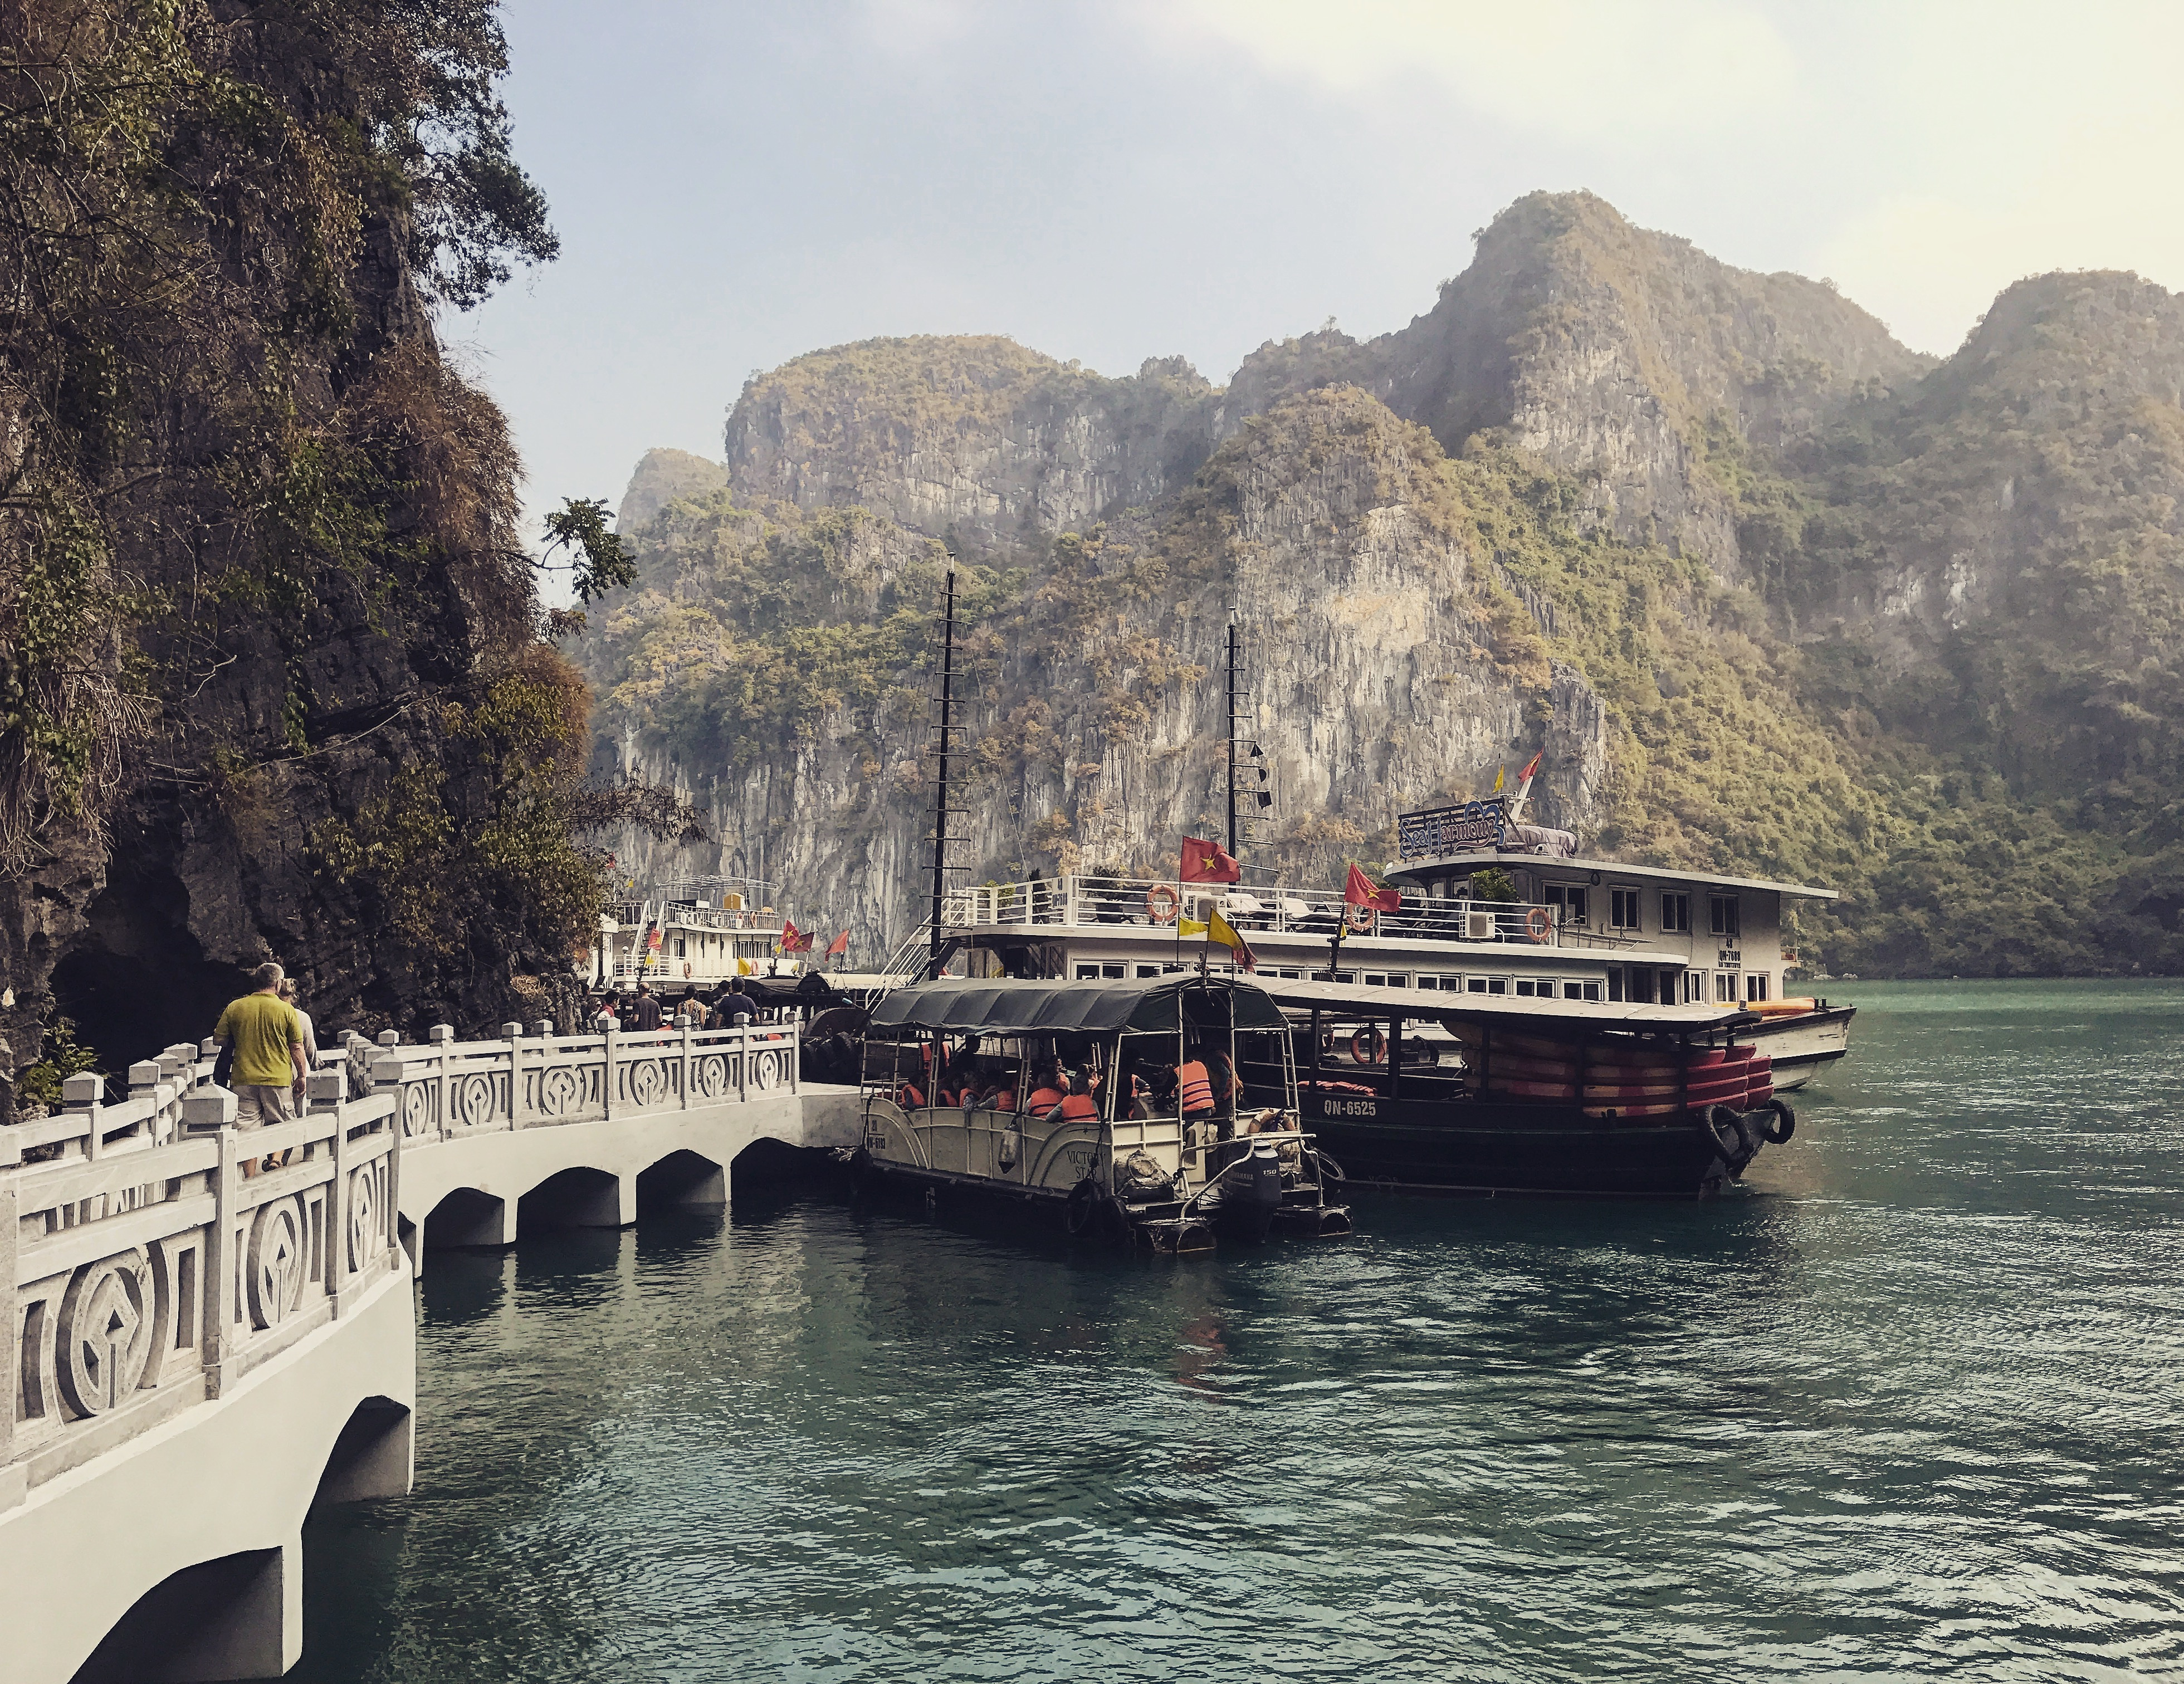 Leaving for a Boatride in Halong Bay Vietnam